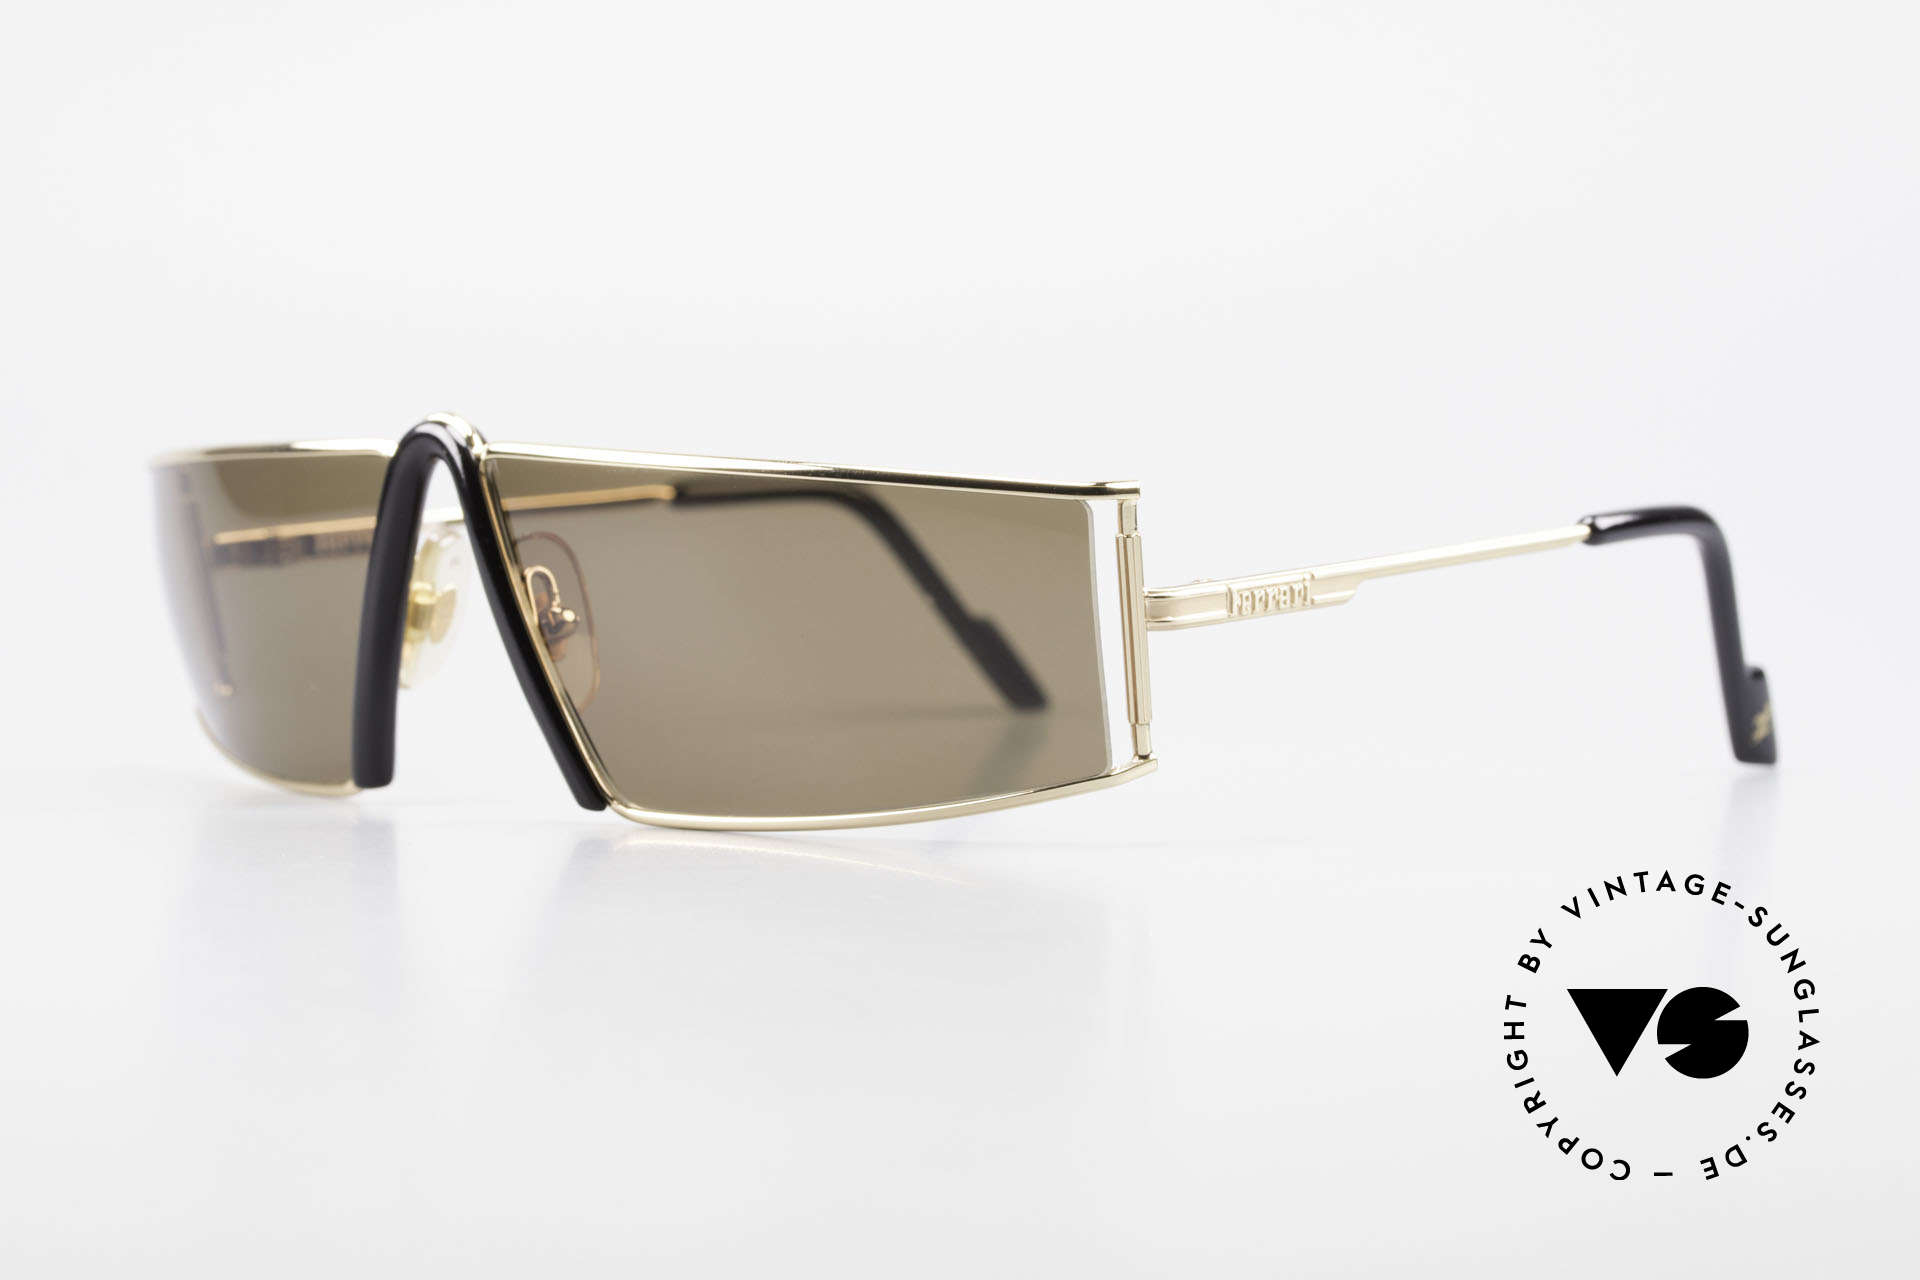 Ferrari F19/S Rare 90's Designer Sunglasses, striking & elegant at the same time (67/12, col 524), Made for Men